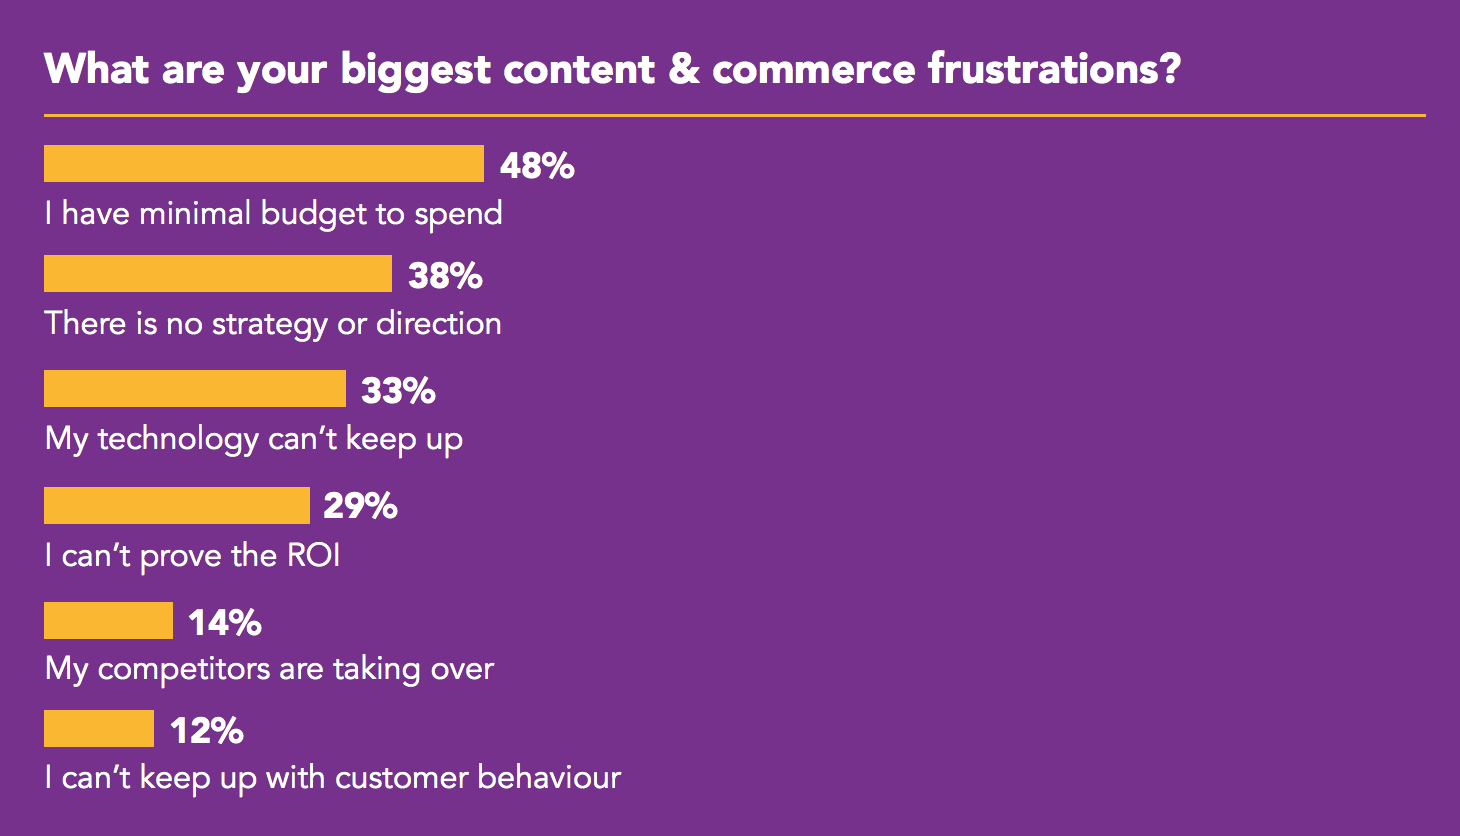 What are your biggest content & commerce frustrations? no budget 48%, no direction 38%, no tech 33%, proving ROI 29%, competitors 14%, customer behaviour 12&